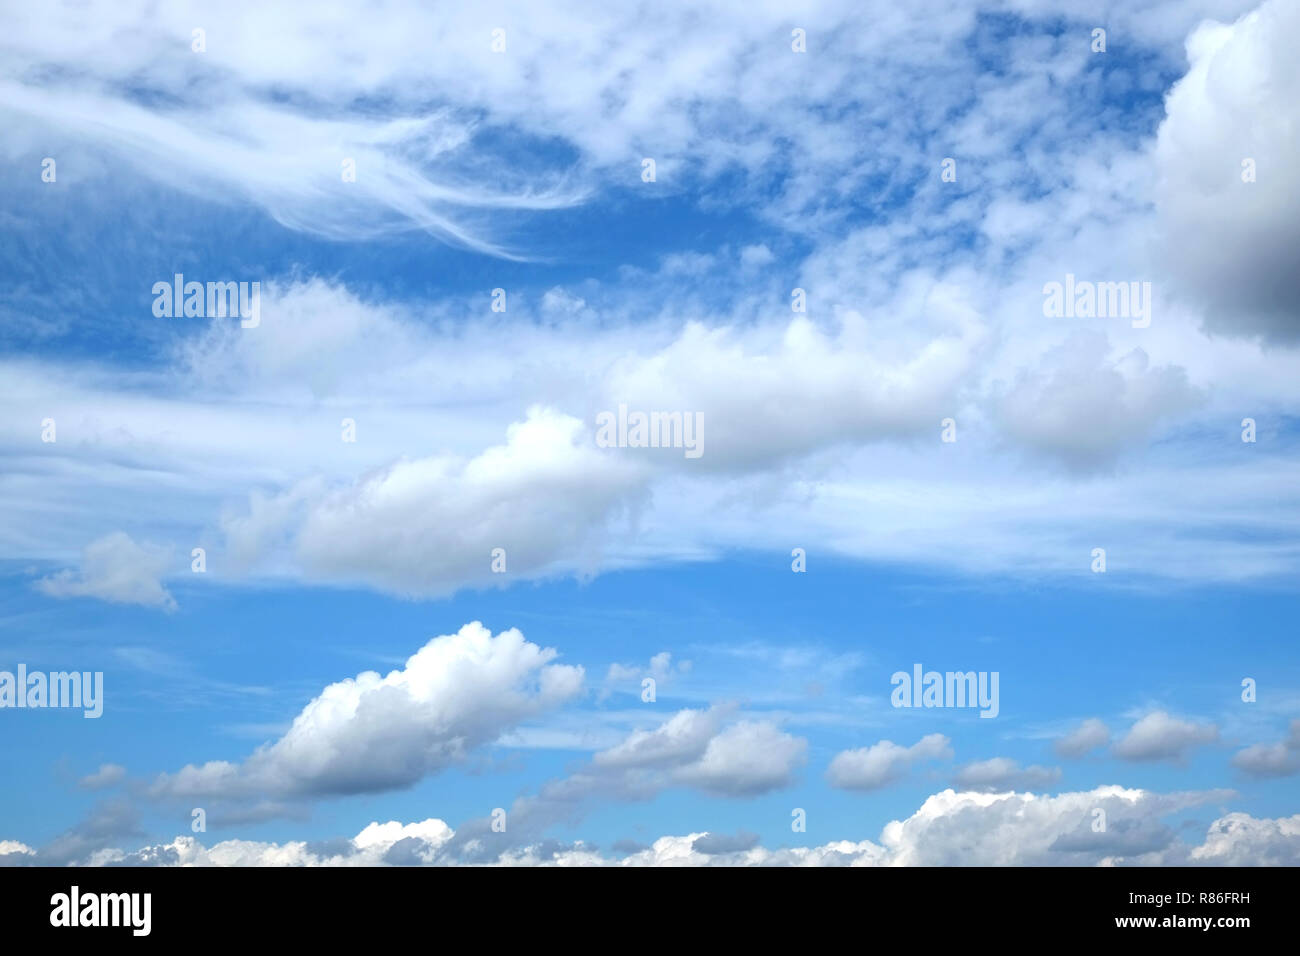 Beautiful sky landscape with white clouds high in the stratosphere on a sunny day horizontal photo - Stock Image